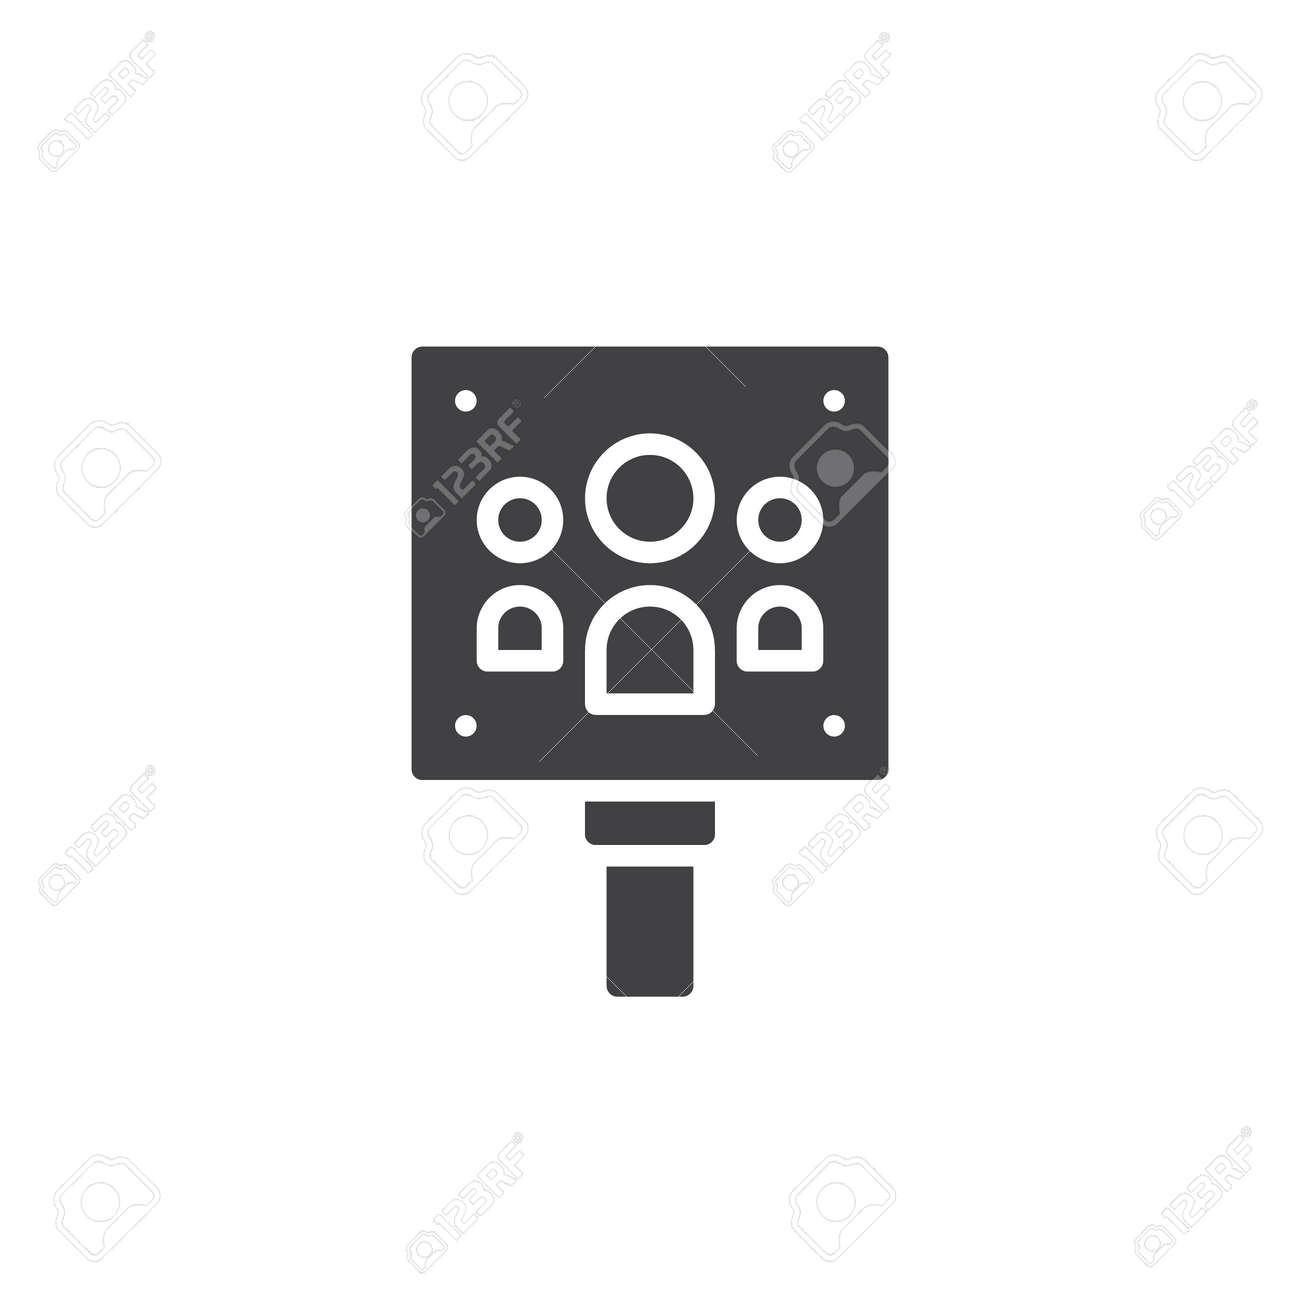 Meeting Point Icon Vector Filled Flat Sign Solid Pictogram